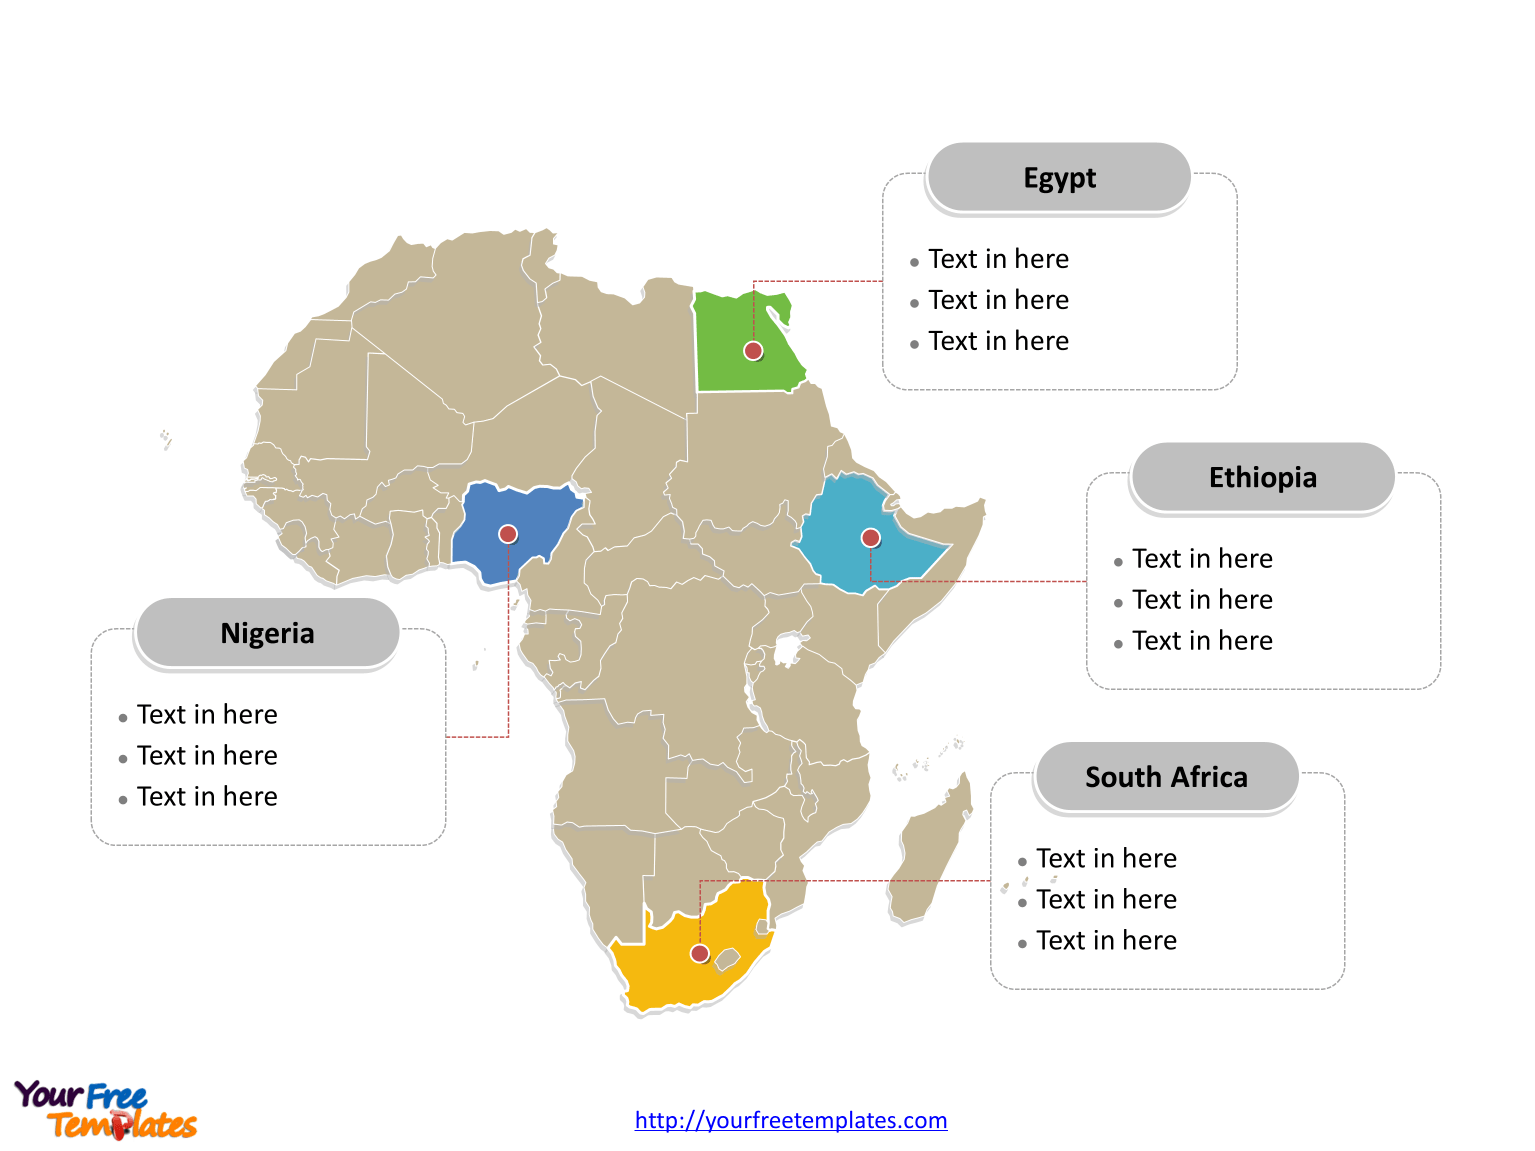 Map of Africa free templates   Free PowerPoint Templates Map of Africa with political division and major Countries labeled on the Africa  map free templates